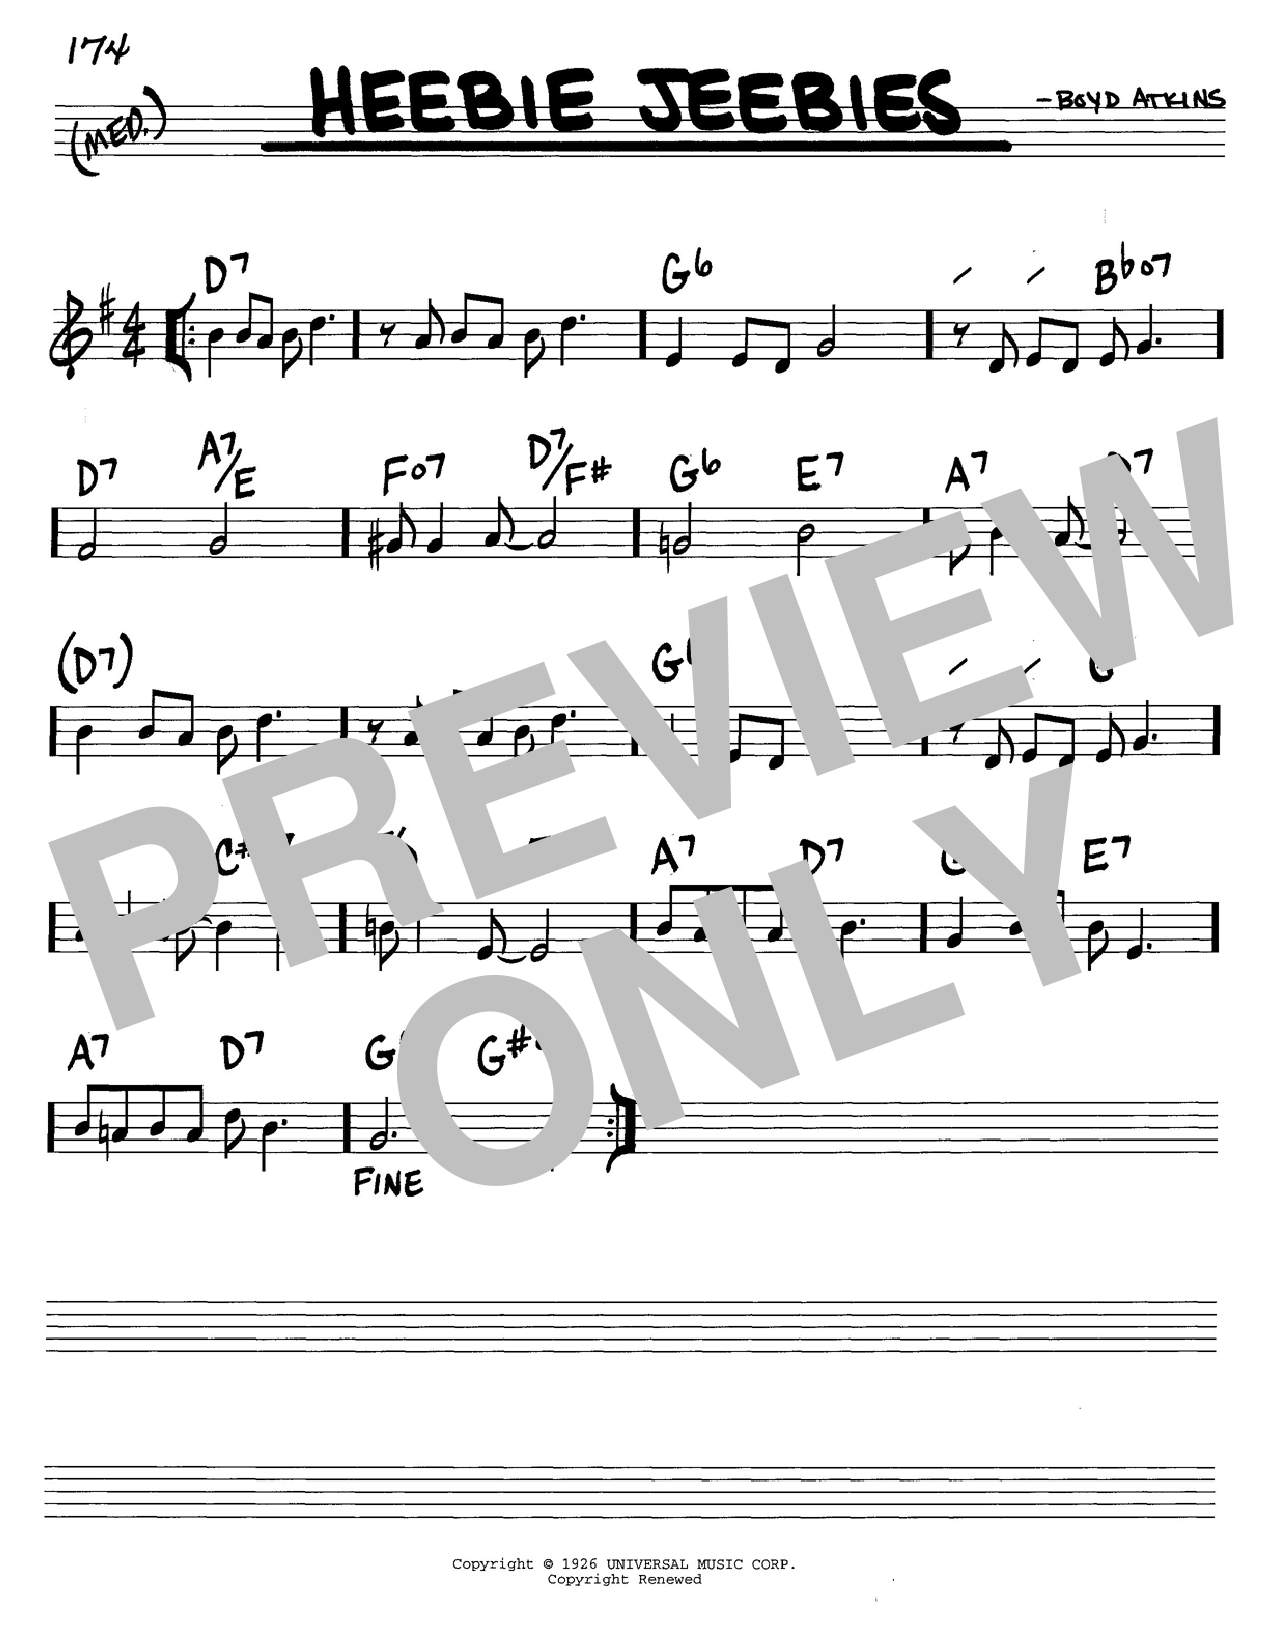 Louis Armstrong Heebie Jeebies sheet music notes and chords. Download Printable PDF.